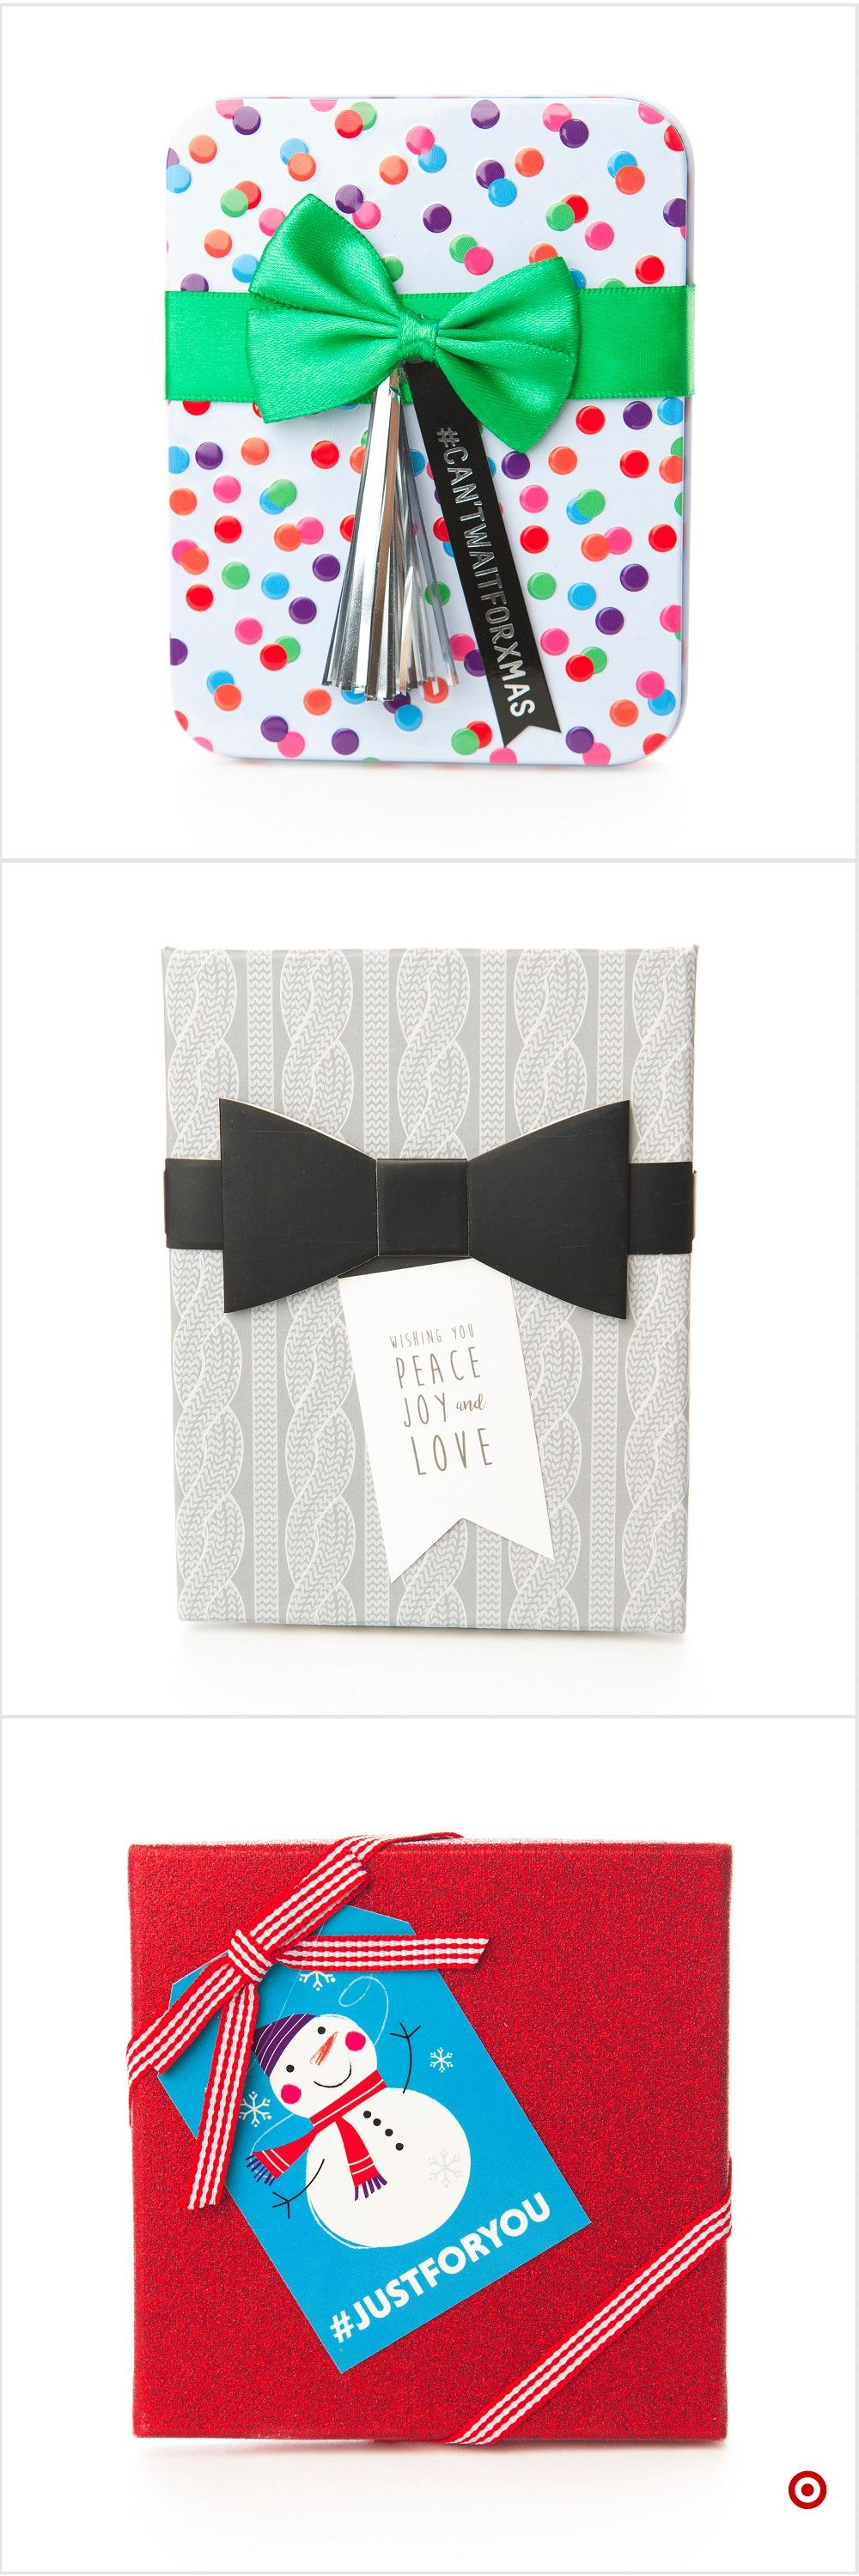 Shop Target For Giftcard Holder You Will Love At Great Low Prices Free Shipping On Orders Of 35 Or Free Same Gift Card Holder Birthday Cards Diy Cool Cards